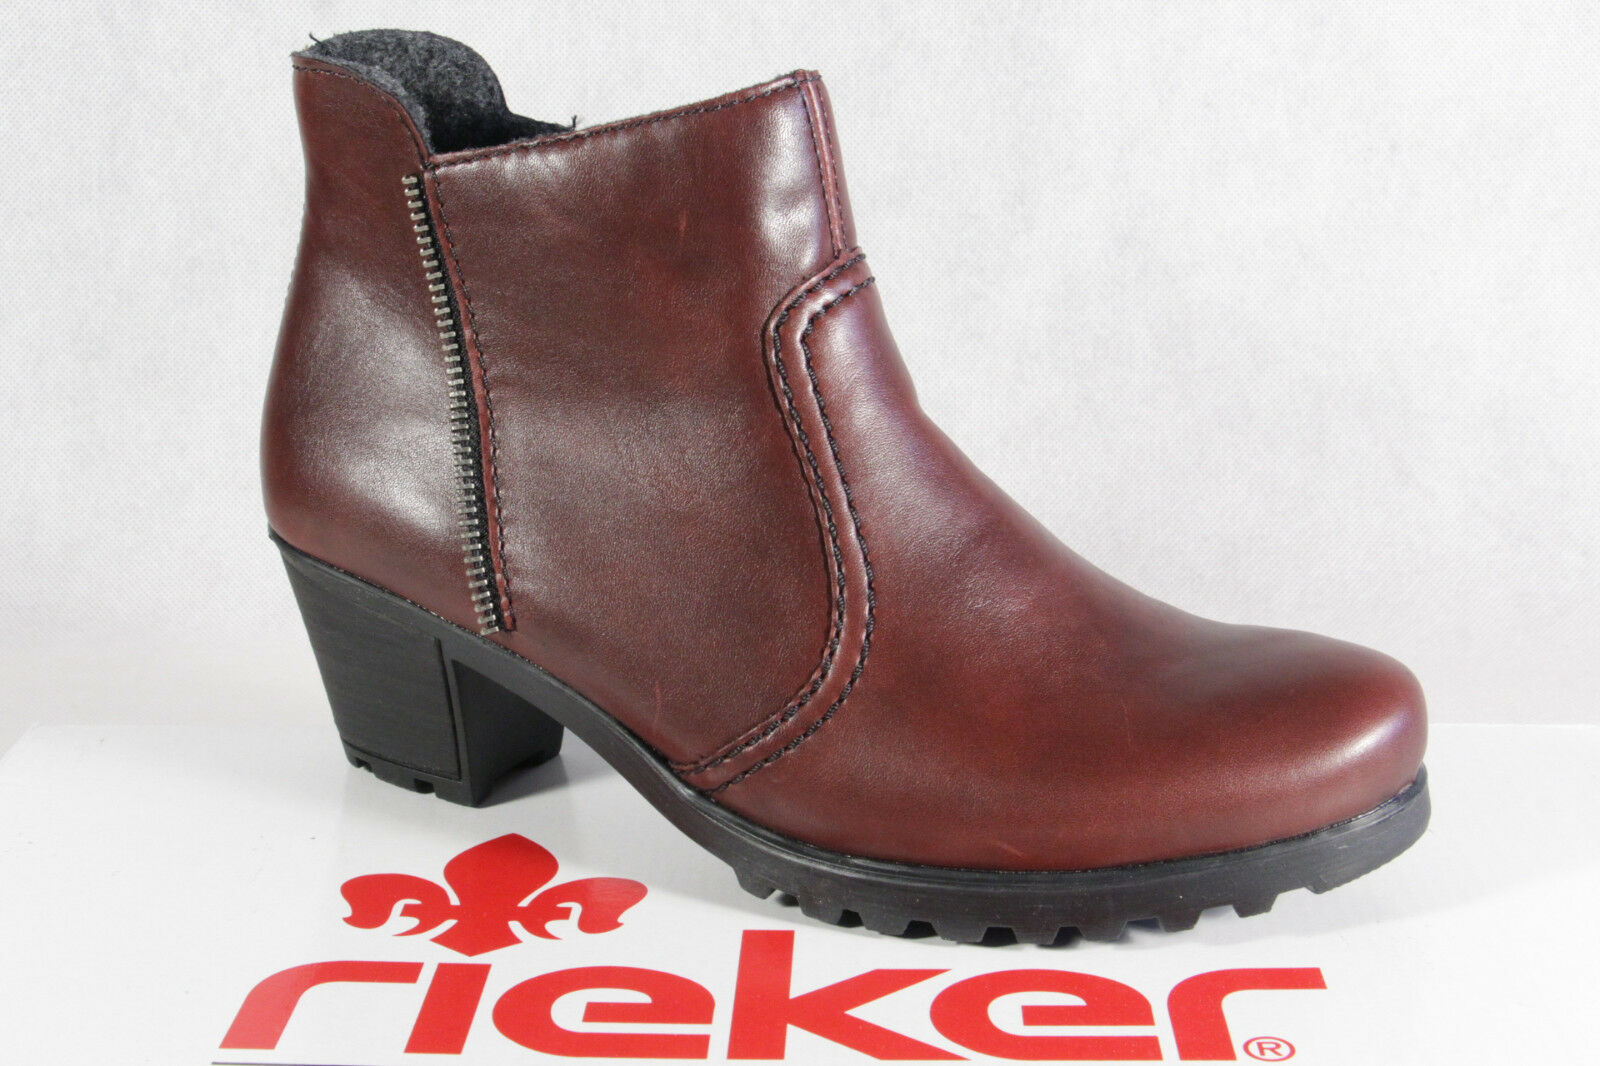 Rieker Women's Boots Ankle Boots Red Zip Y8070 New